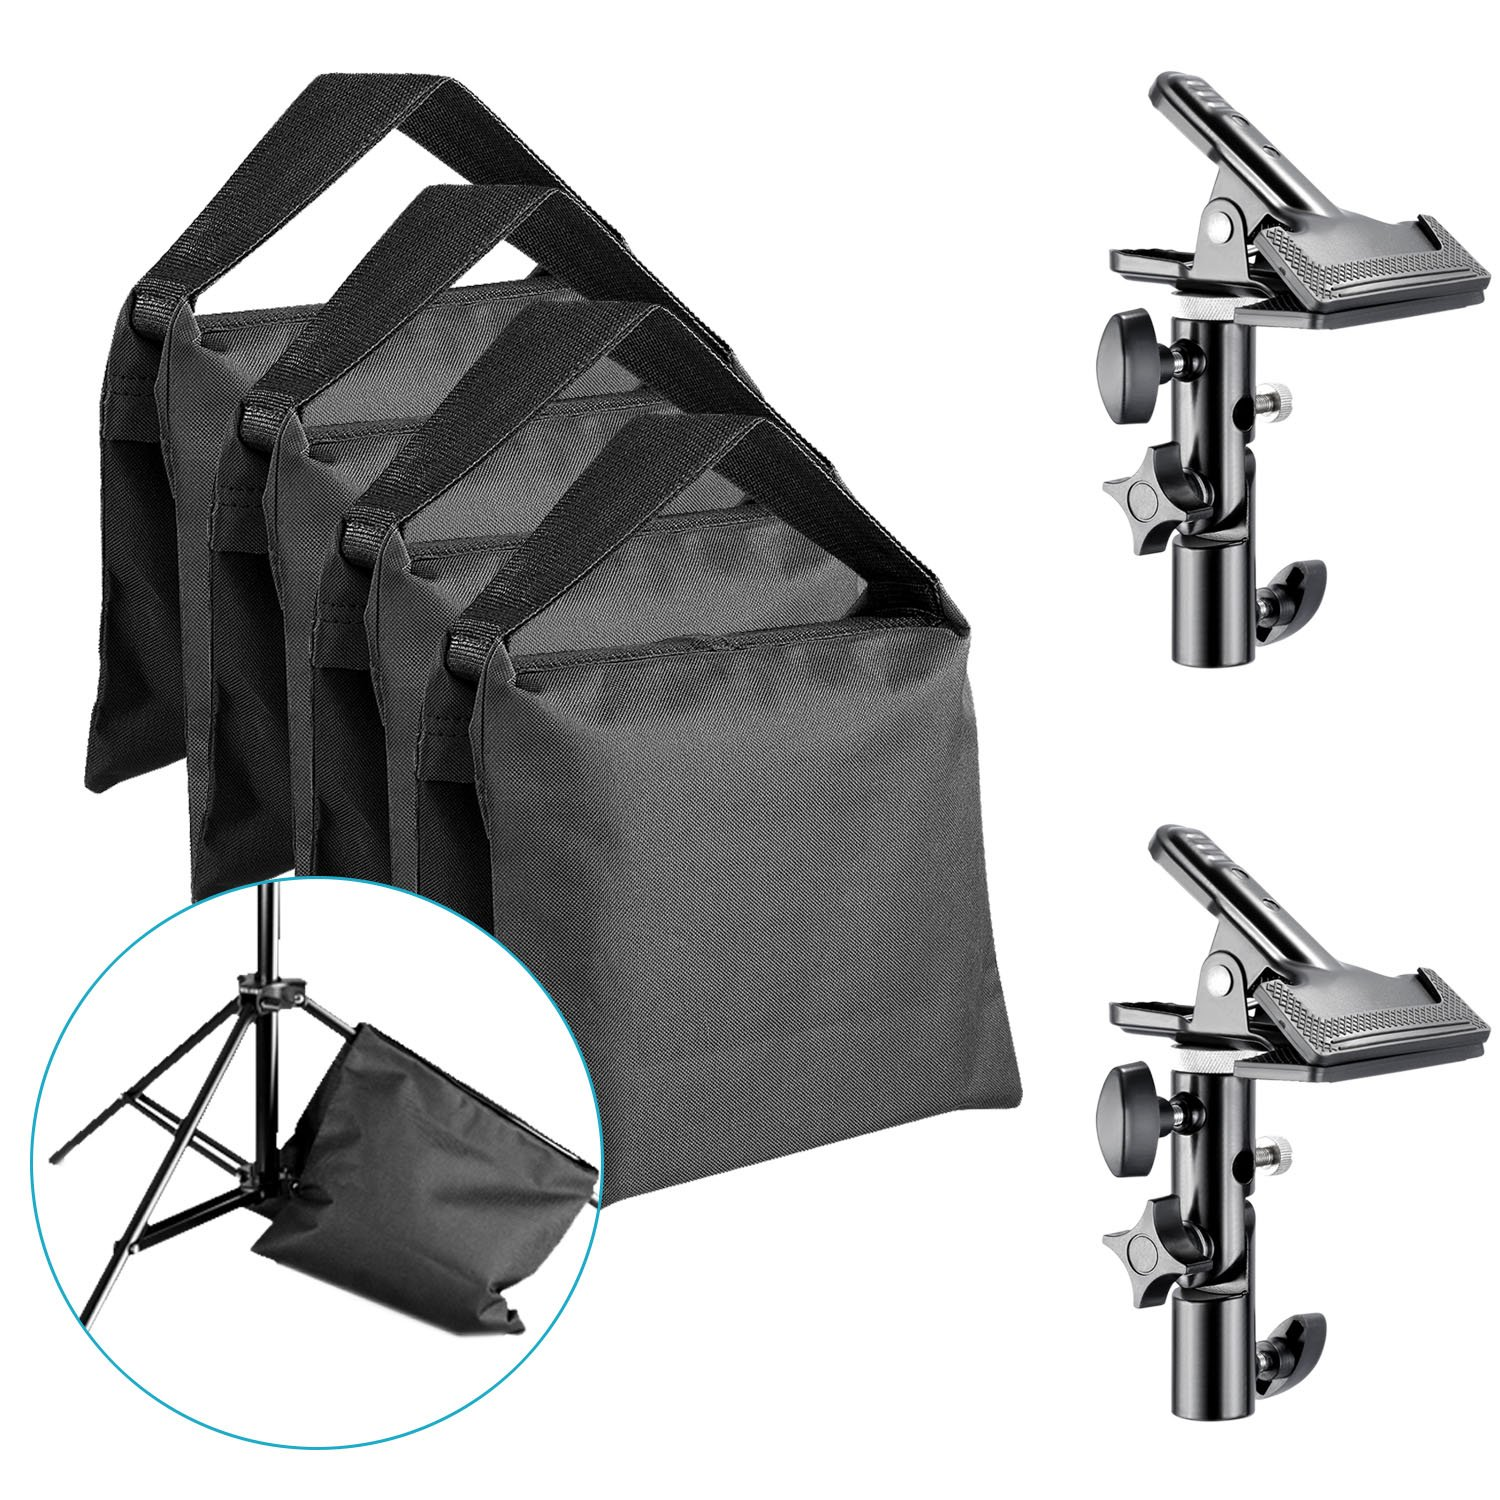 Neewer 4-Pack Heavy Duty Sandbag for Photo Studio Light Stands Boom Arms and 2-Pack Metal Reflector Clamp with 5/8-inch Light Stand Attachment, Black (Empty Sandbag) 90092427